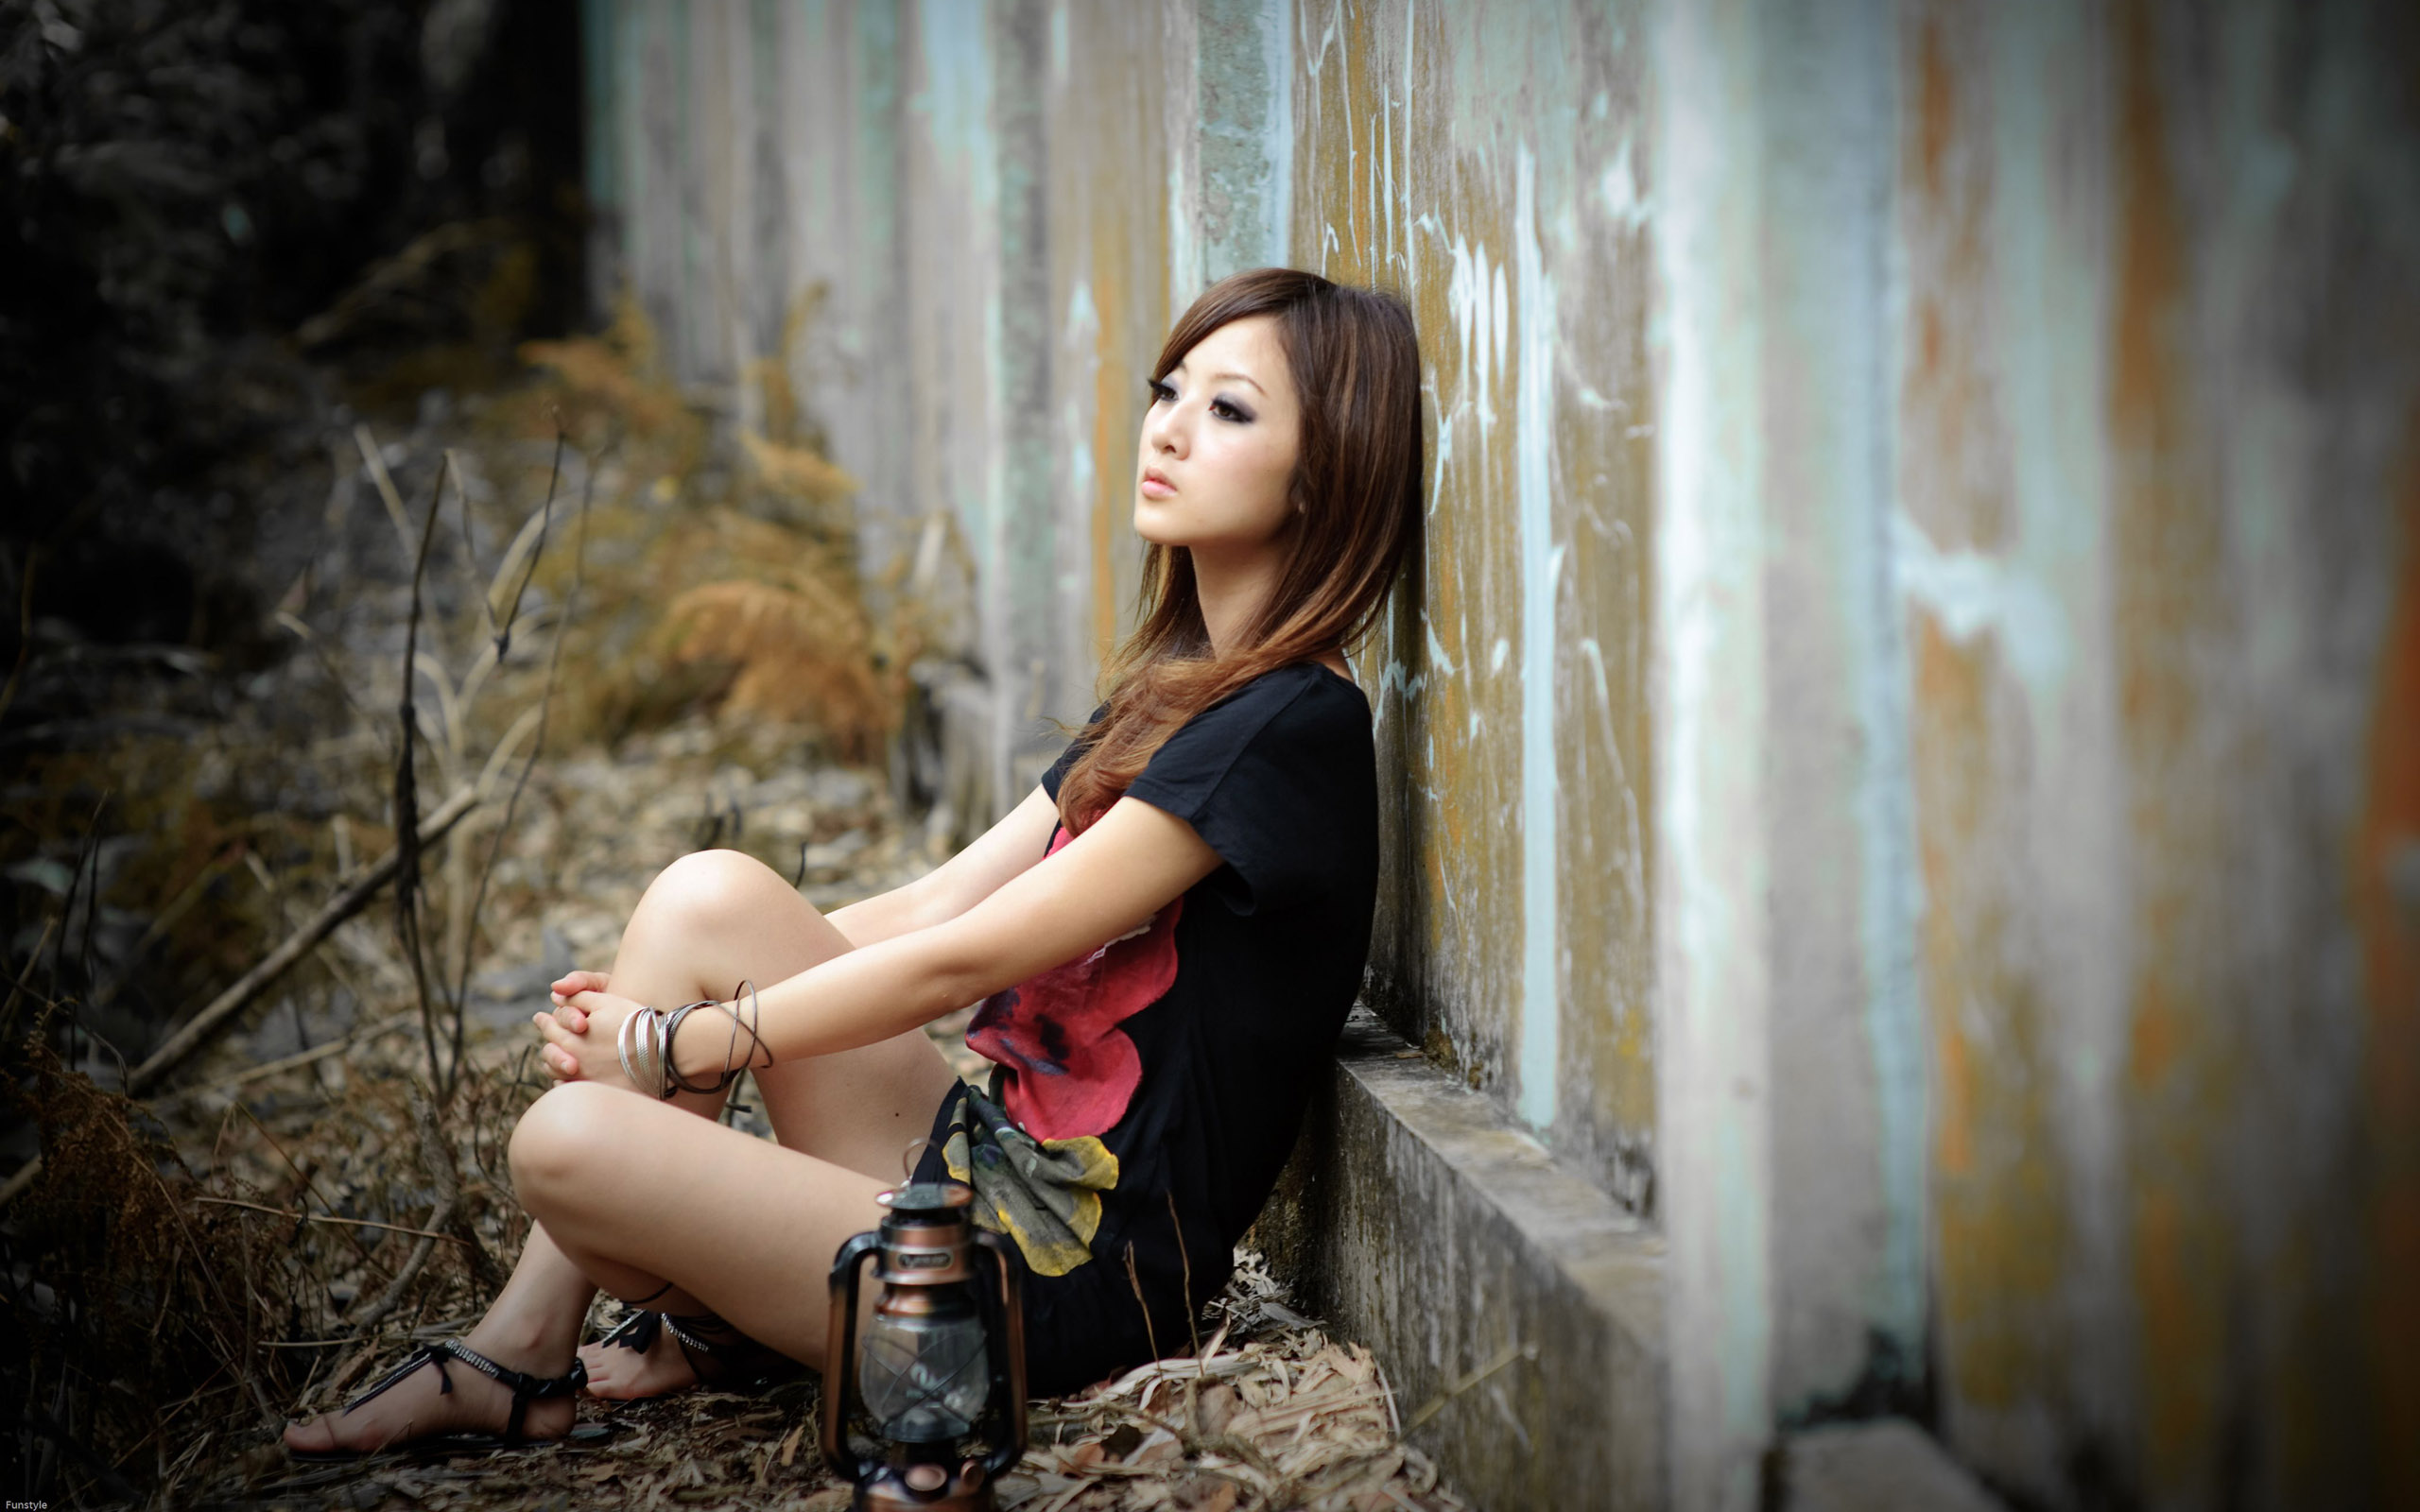 Sad Alone Girl Sitting Wallpapers - Hd Wallpapers-2225